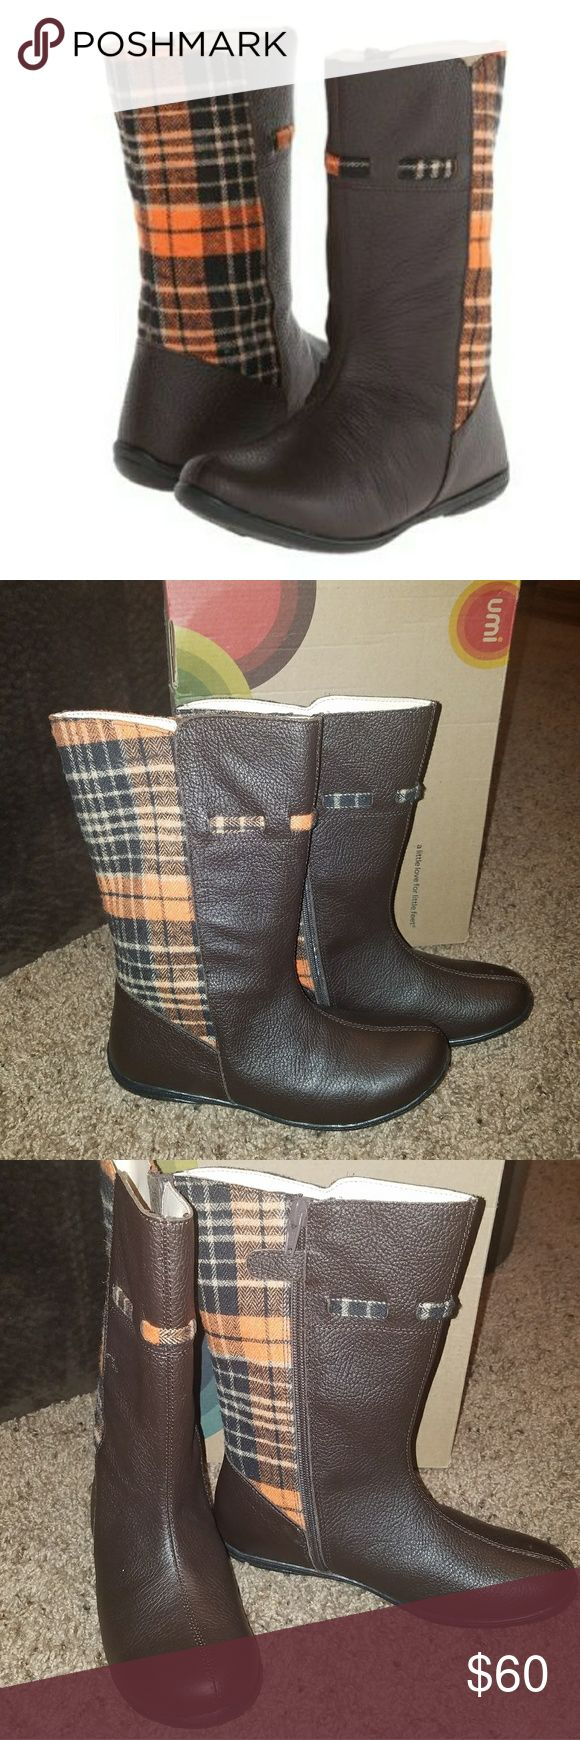 Girls umi Rayna II Boots Size 2 UMI Brand New Brand New  Leather Non slip sole  Retail - $88  🛒🎁 Bundle and Save 💵💲 15% off 3+ items & All items marked with a ❤ are 3 for $25 or 5 for $40 Umi Shoes Boots